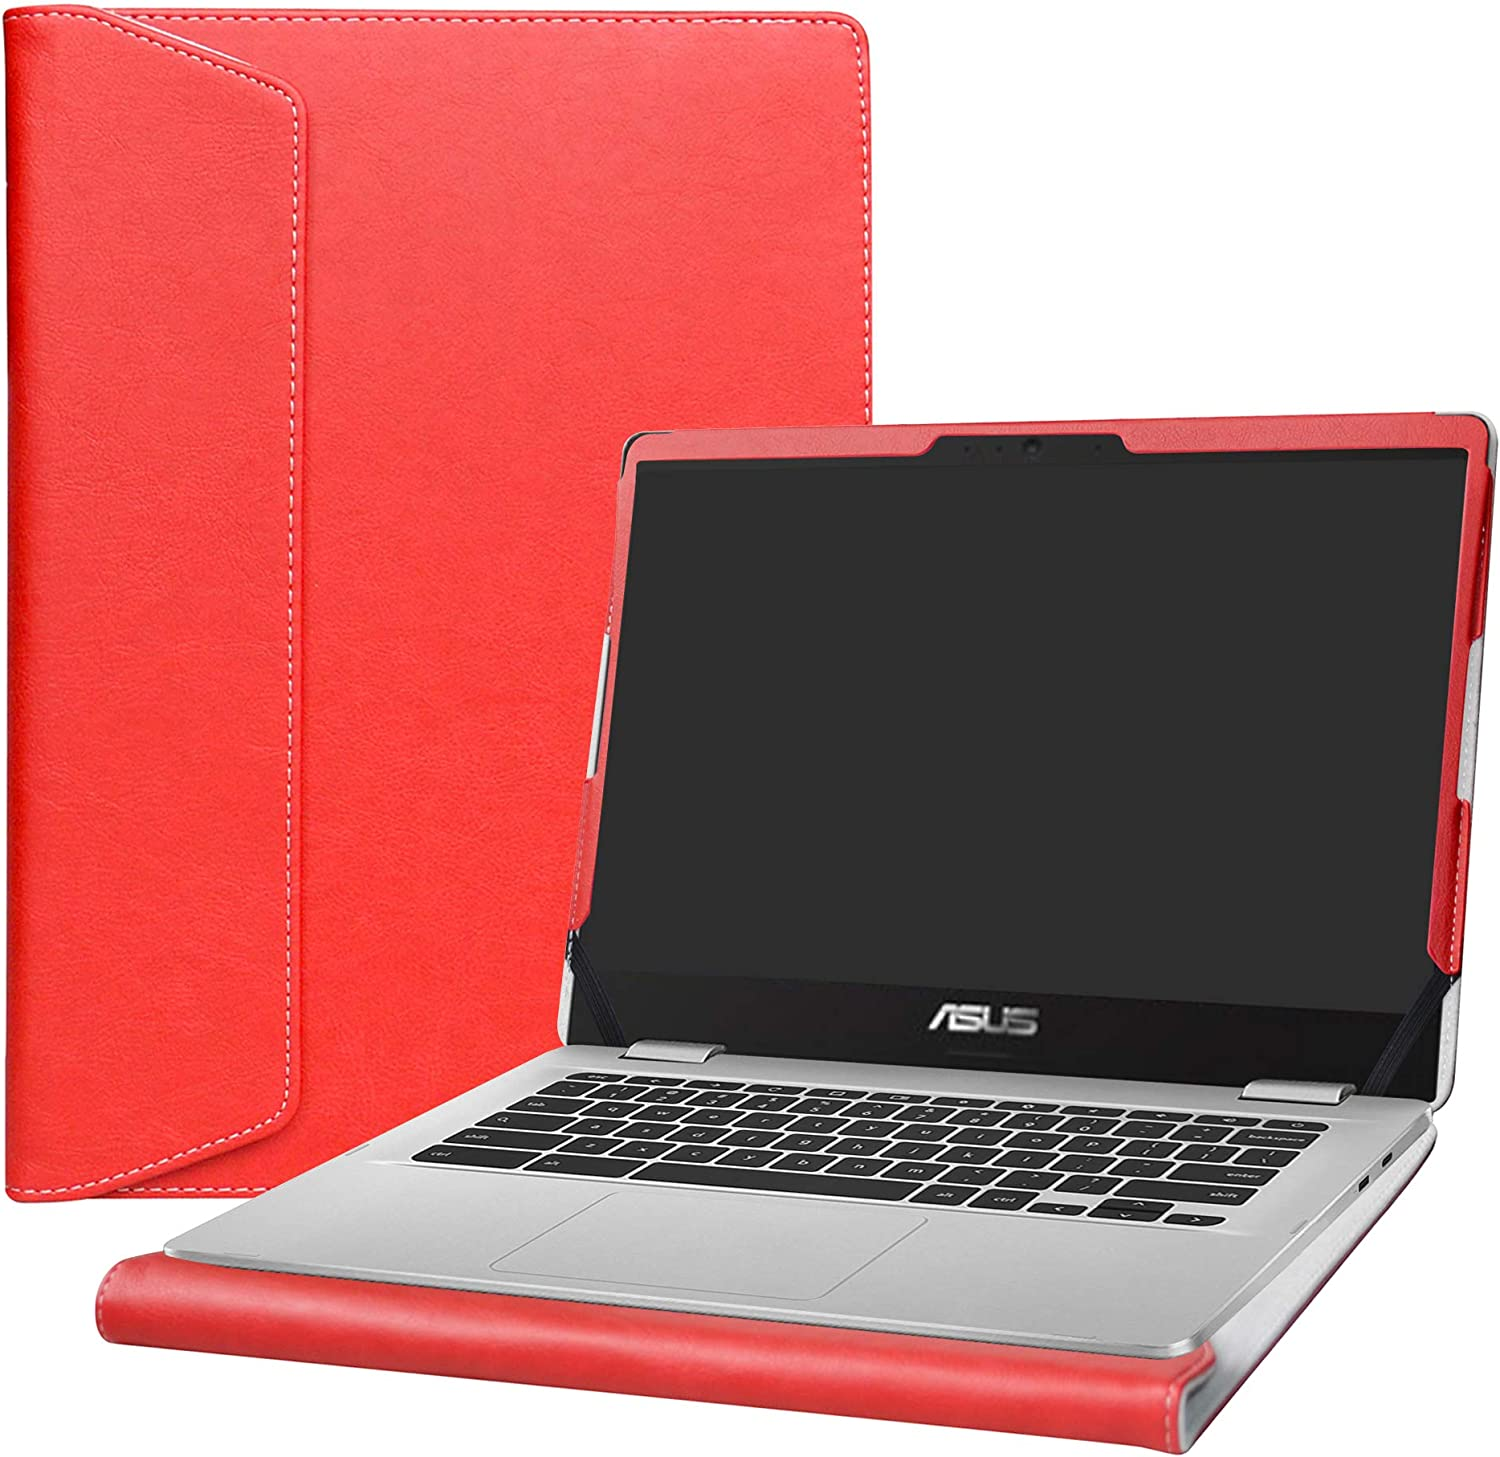 """Alapmk Protective Case Cover for 14"""" ASUS Chromebook C423NA c423na-dh02 & ACER Swift 3 14 SF314-55 SF314-55g SF314-56 Laptop(Note:Not fit Swift 3 SF314-51 SF314-57 SF314-52 SF314-53),Red"""